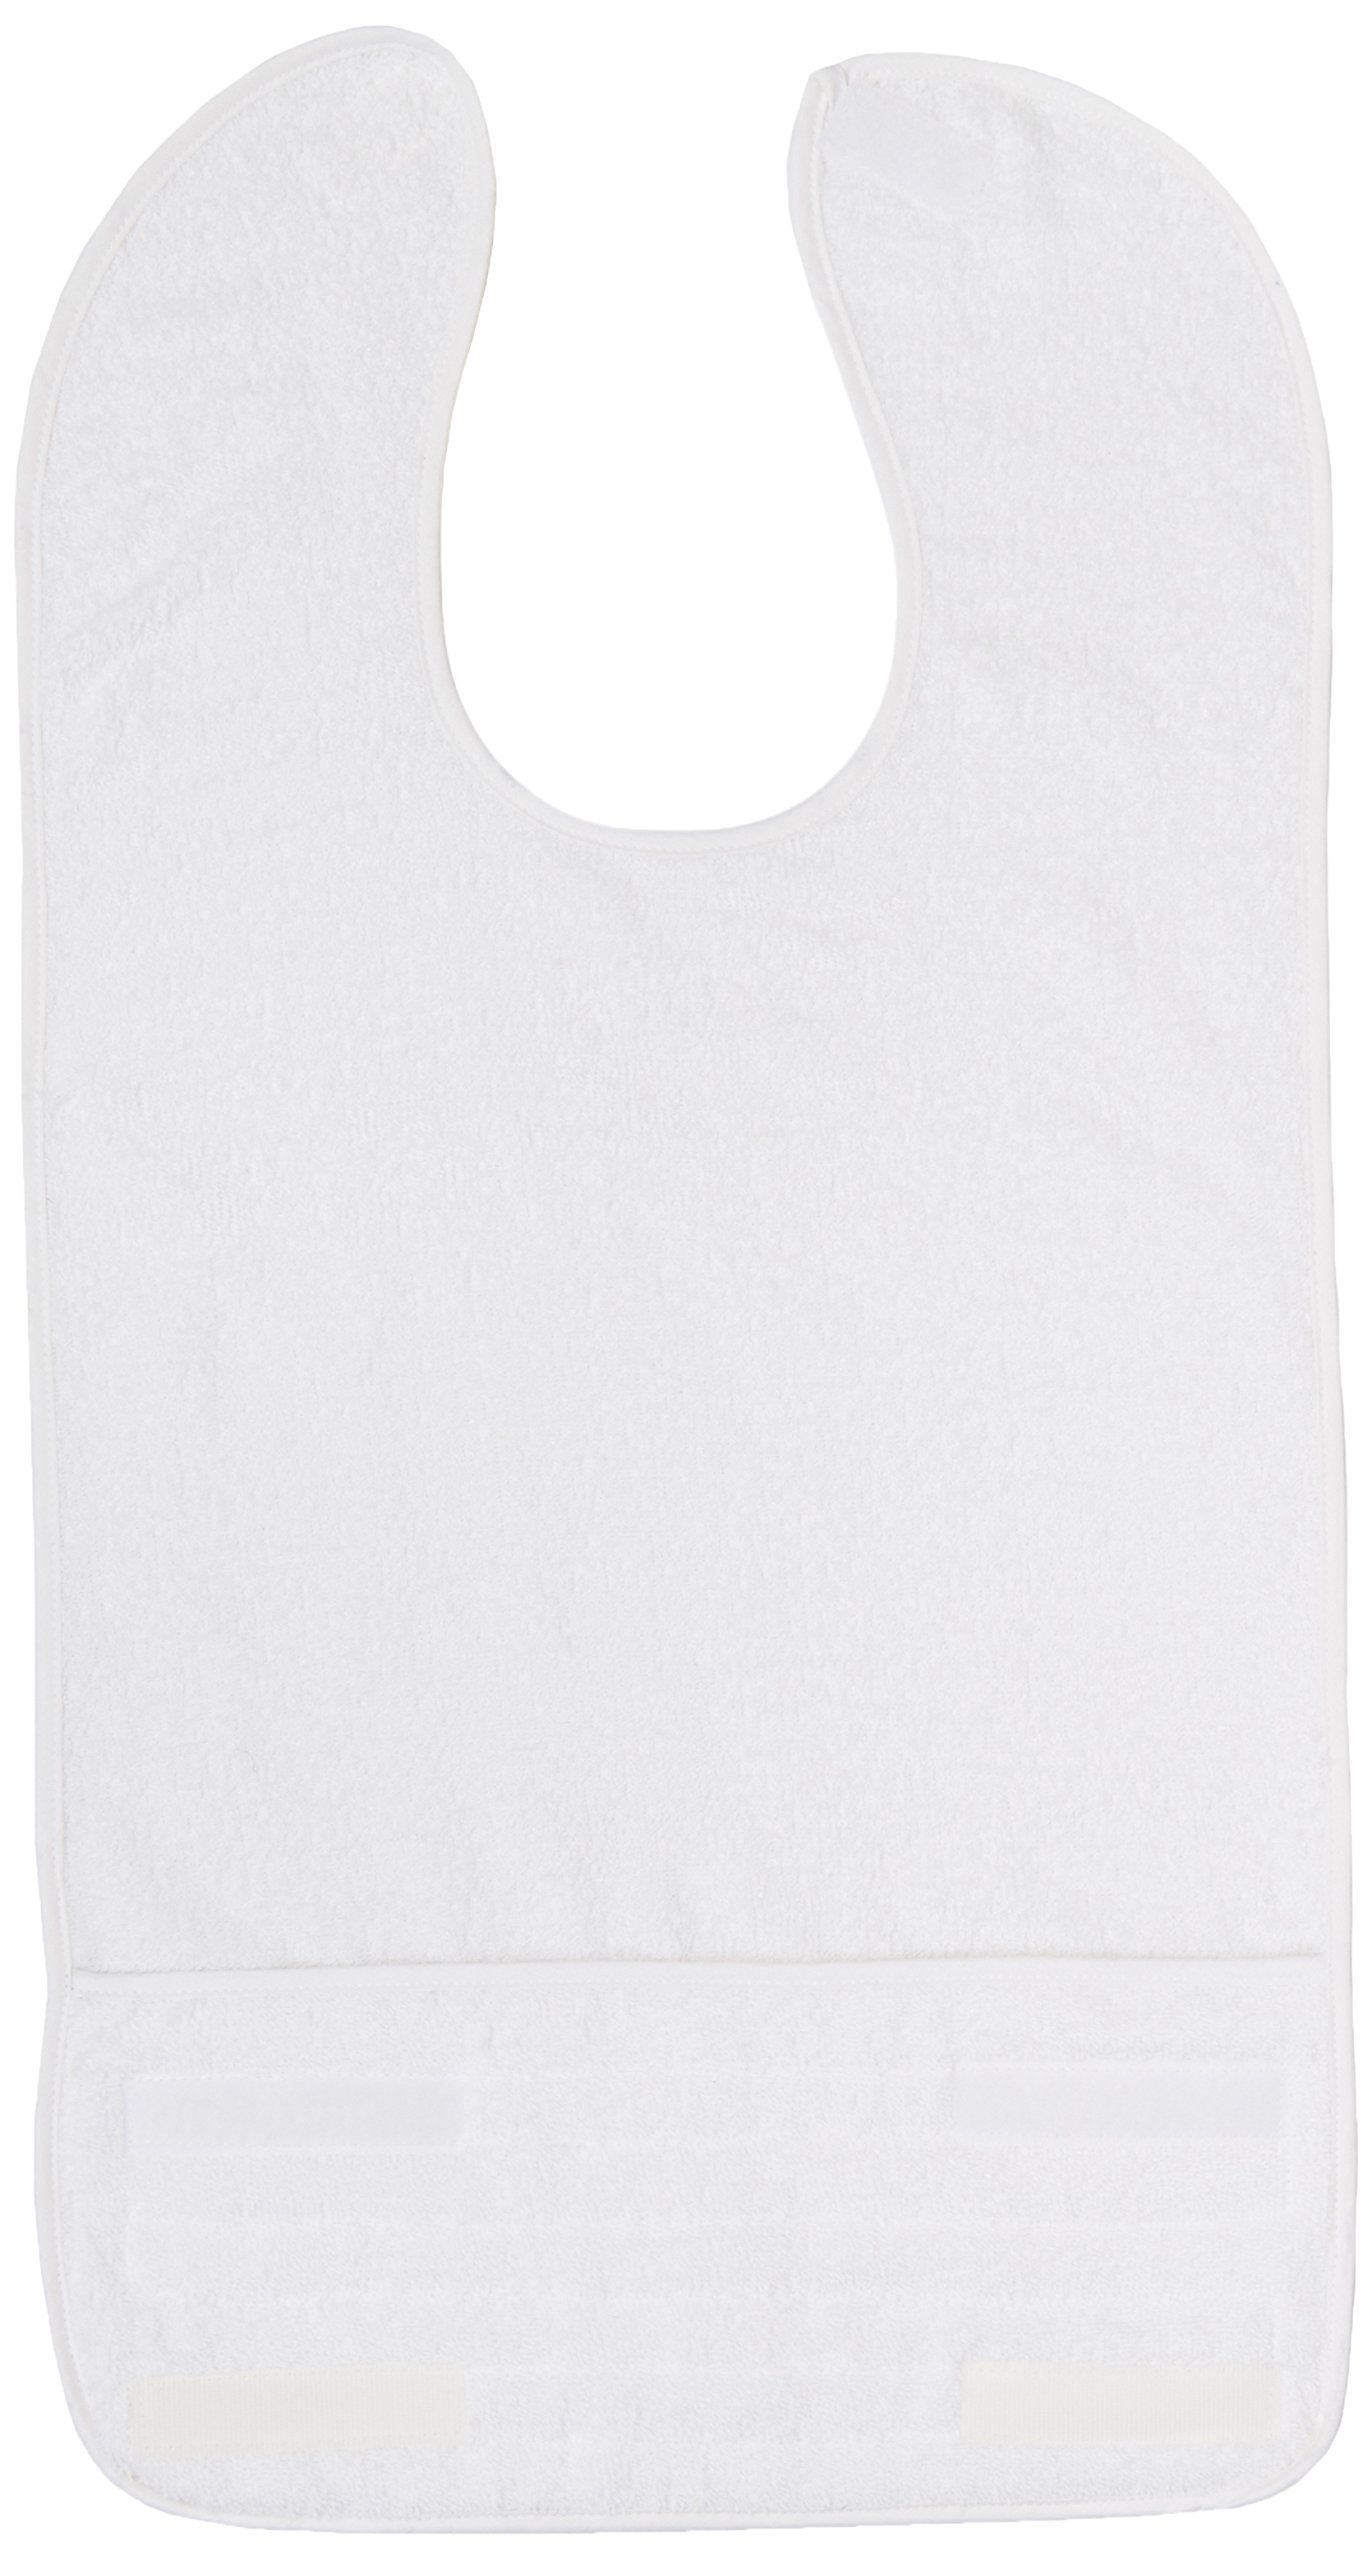 Sammons Preston Terry-Cloth Food Catcher, Pack of 10, White Standard Bib, 14-1/2 W x 15'' L, Lightweight Adult Bib Keeps Clothes Clean for Elderly, Disabled, and Messy Eaters, Velcro Strap Secures Bib